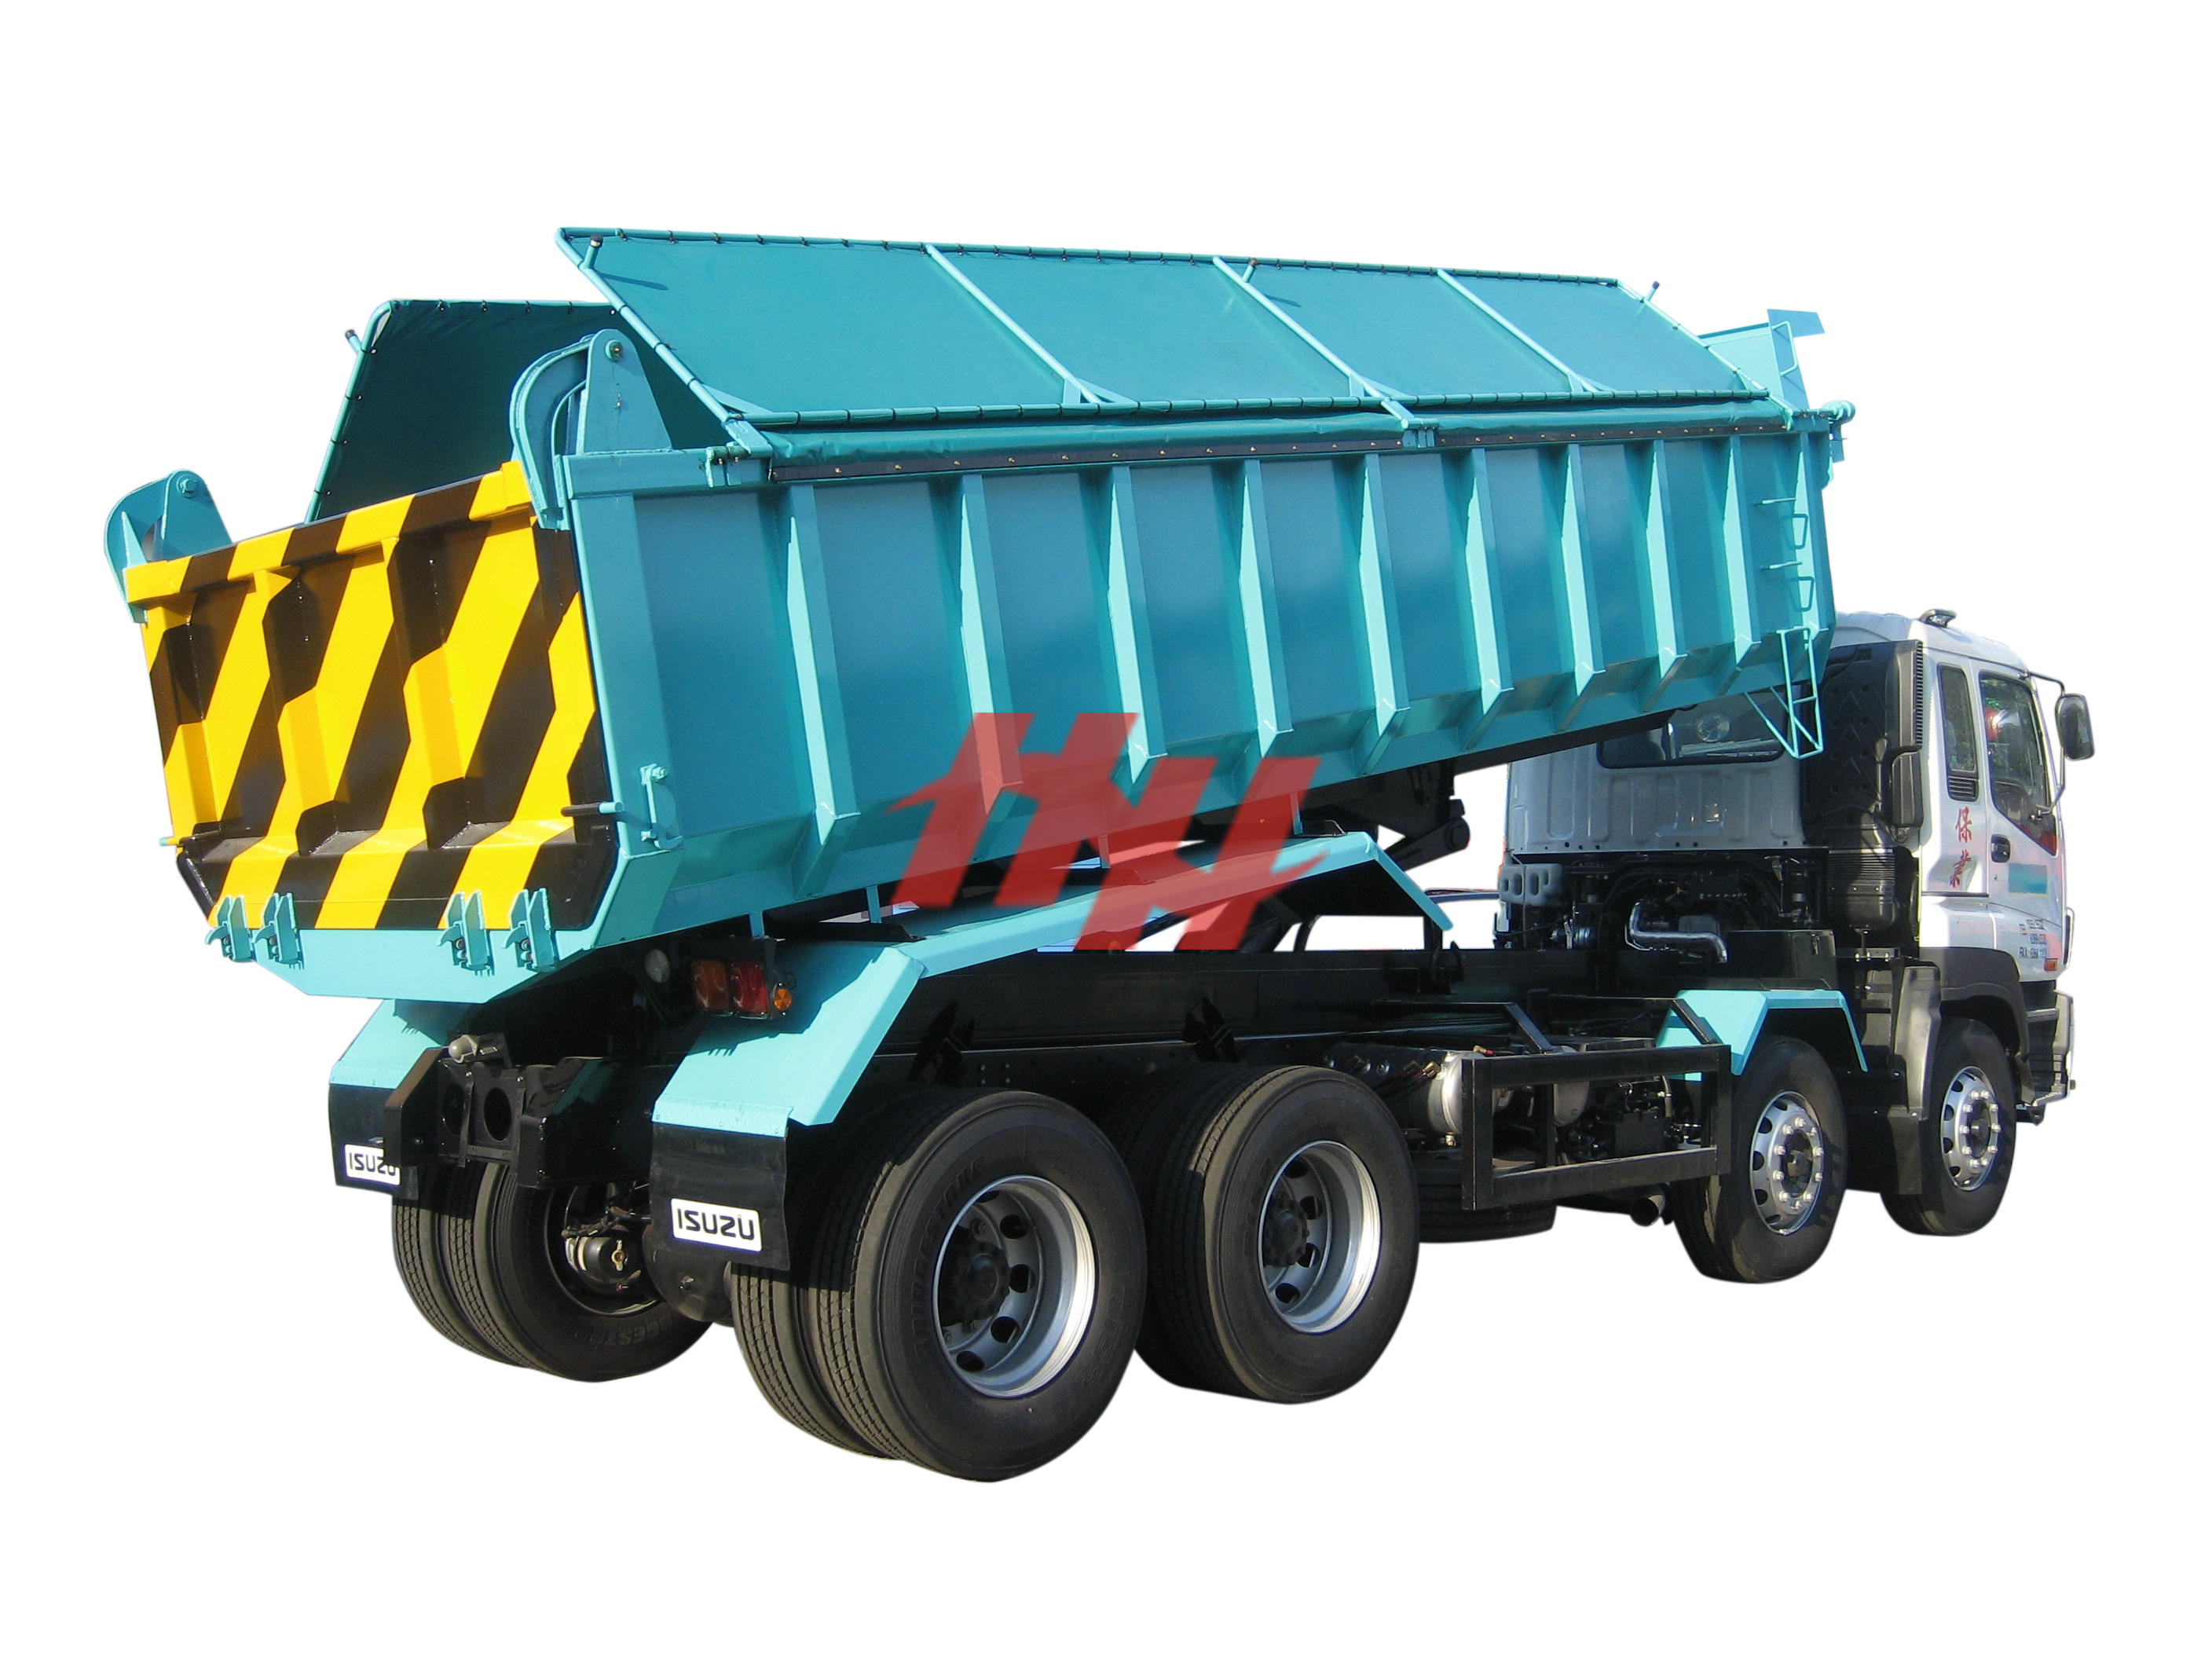 20fts tipper body with krm 220l hoist edit